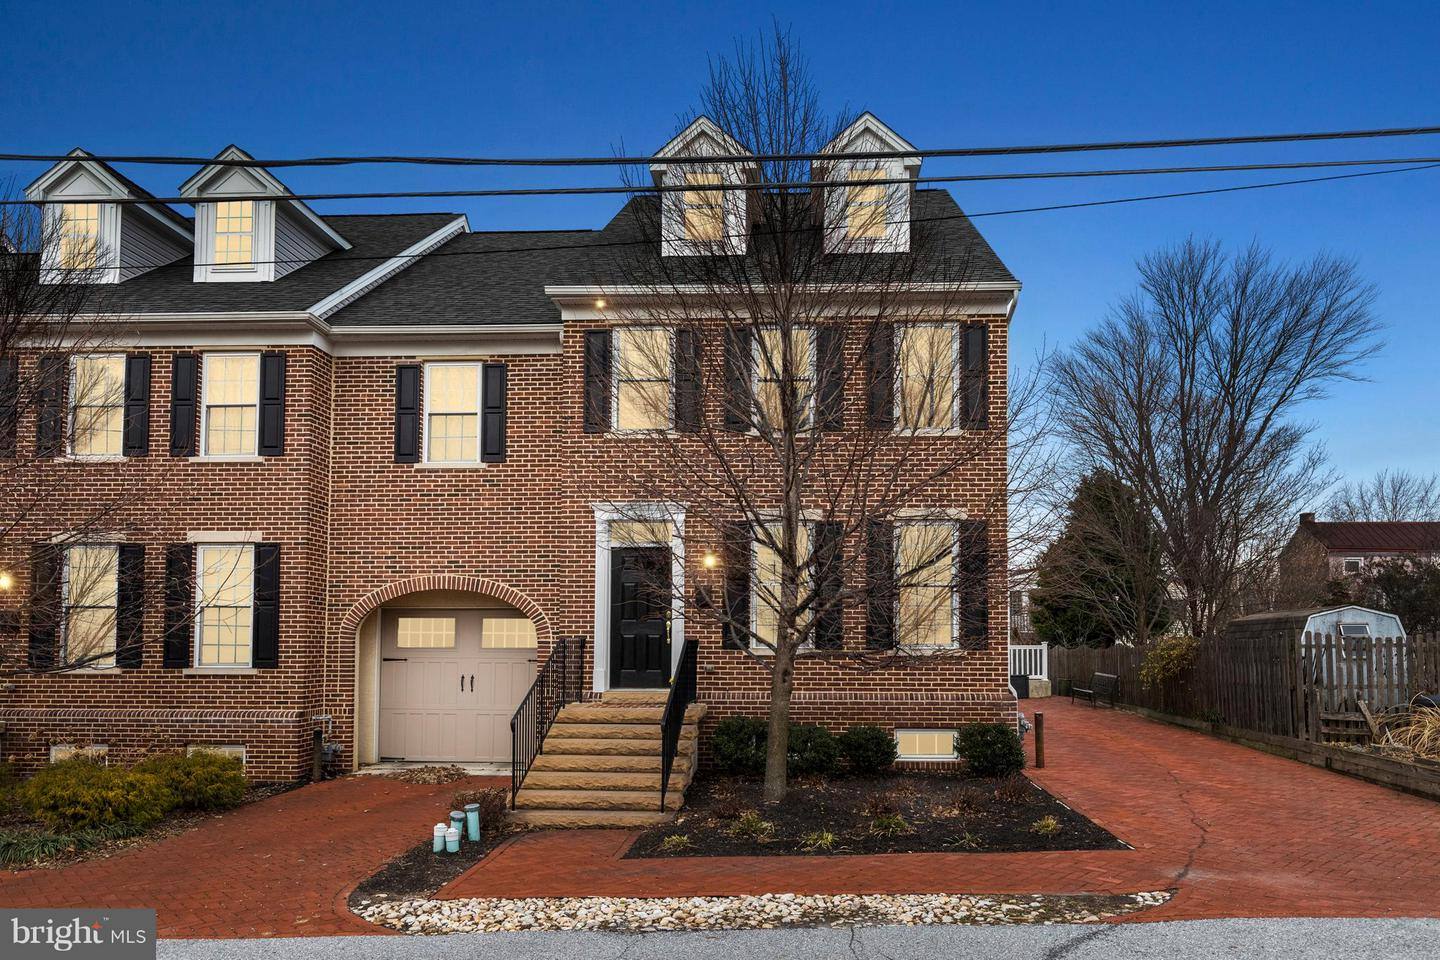 421 Wollerton Street West Chester, PA 19382